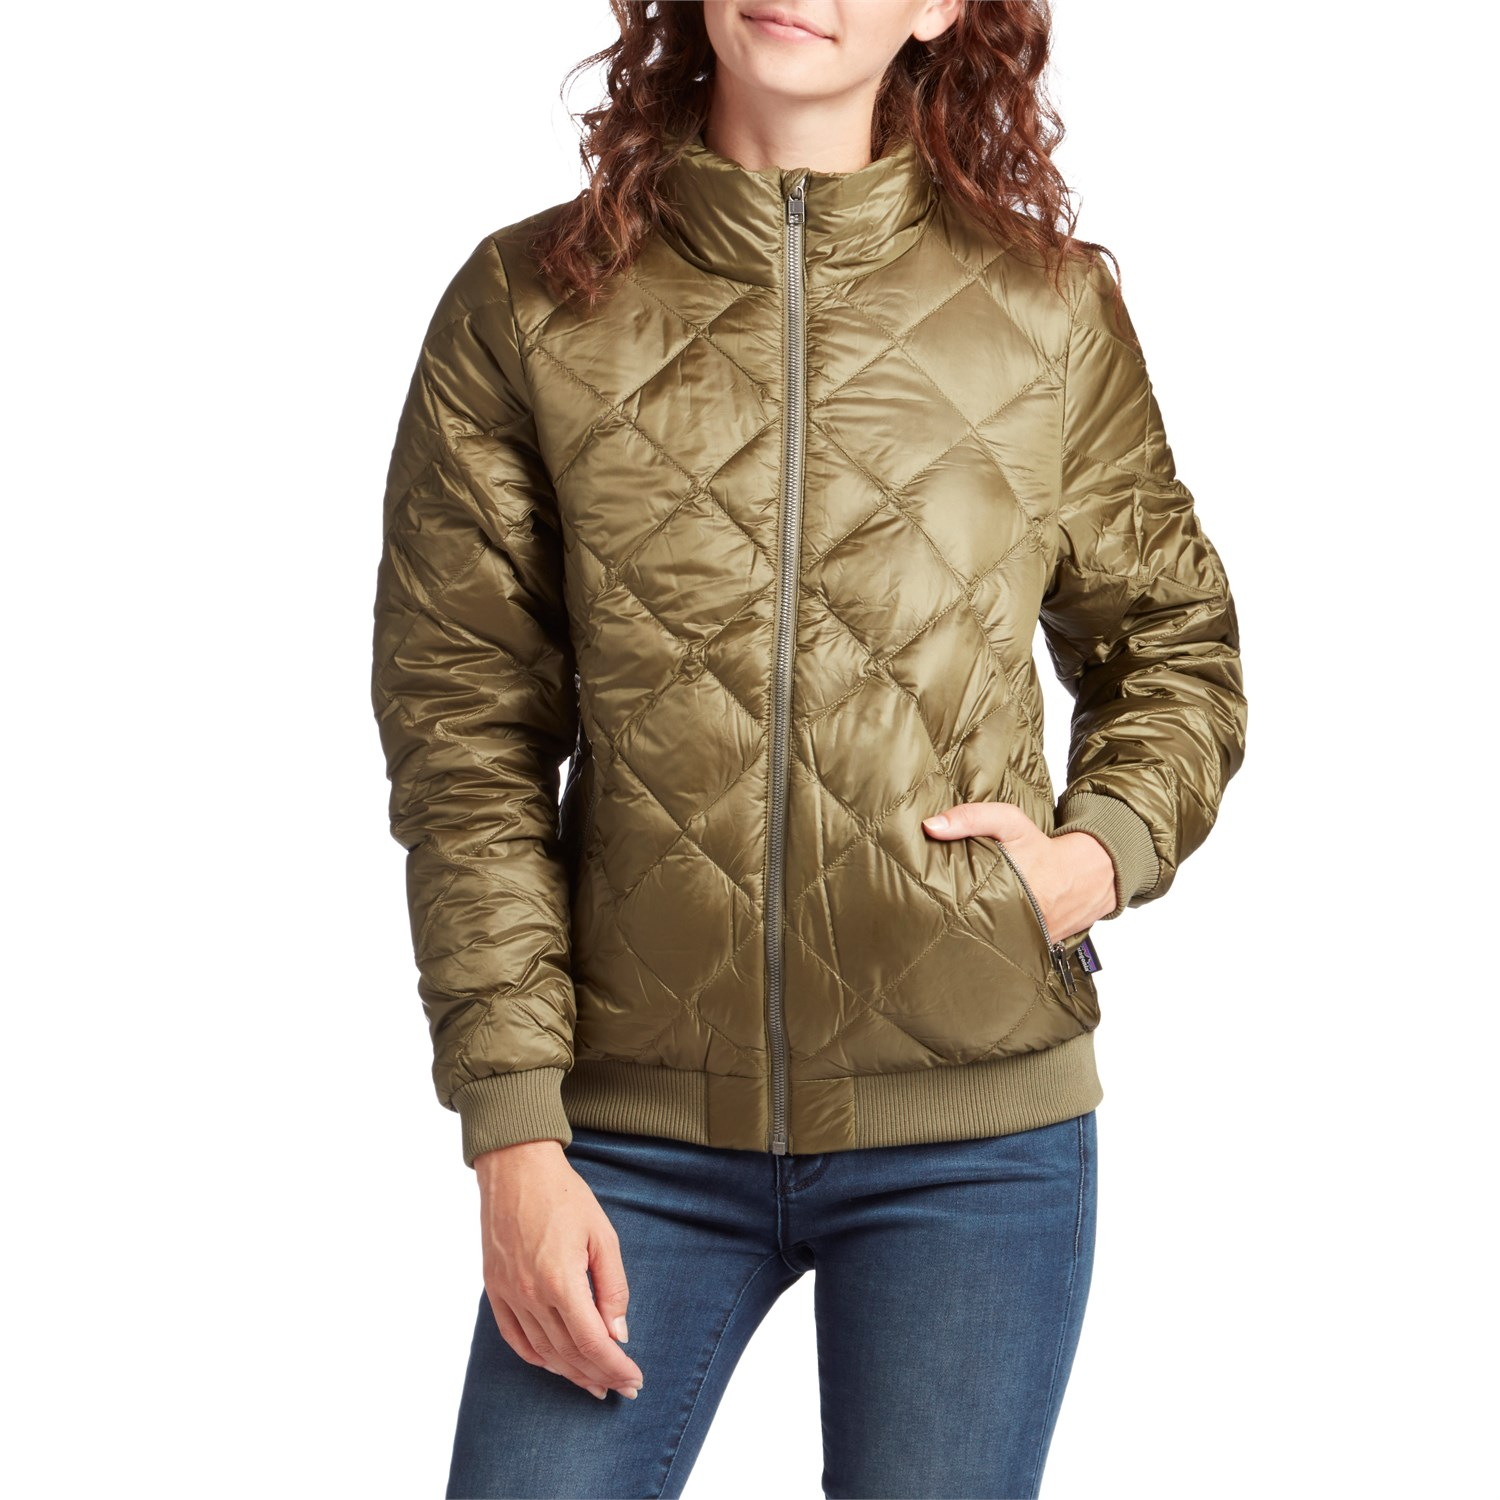 6716d1736 Patagonia Prow Bomber Jacket - Women's